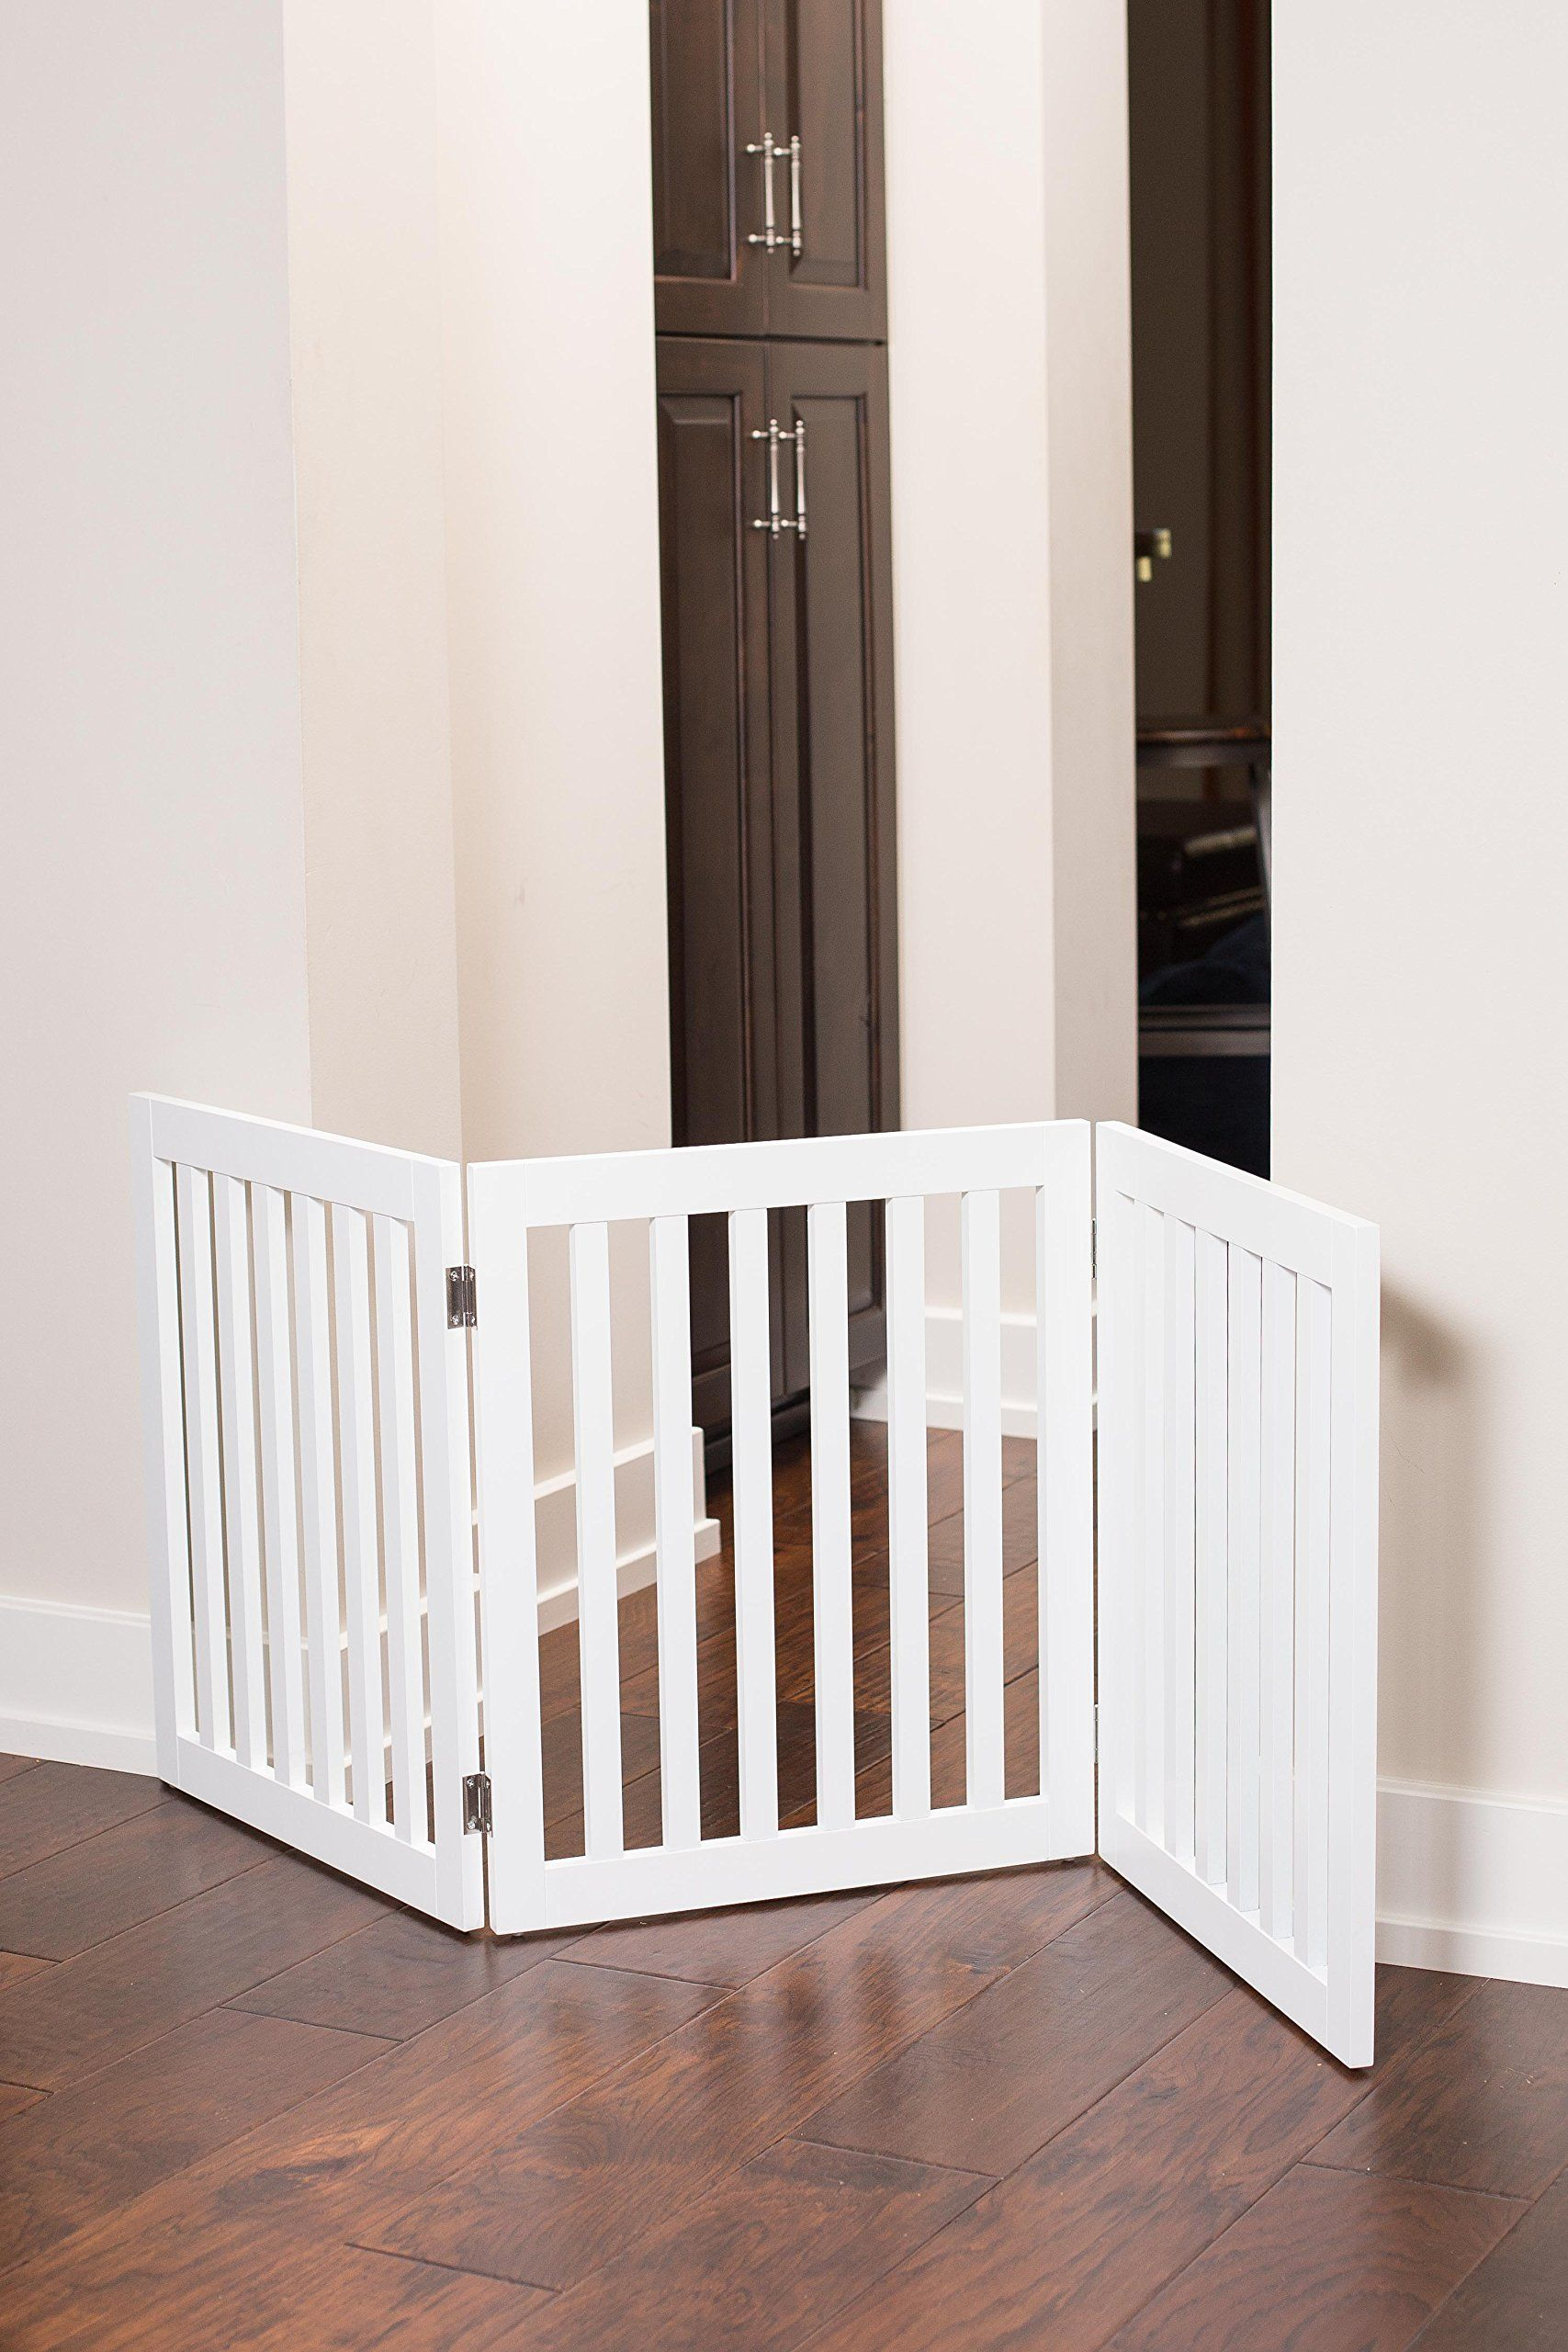 Best traditional pet gate 3 panel 24 inch step